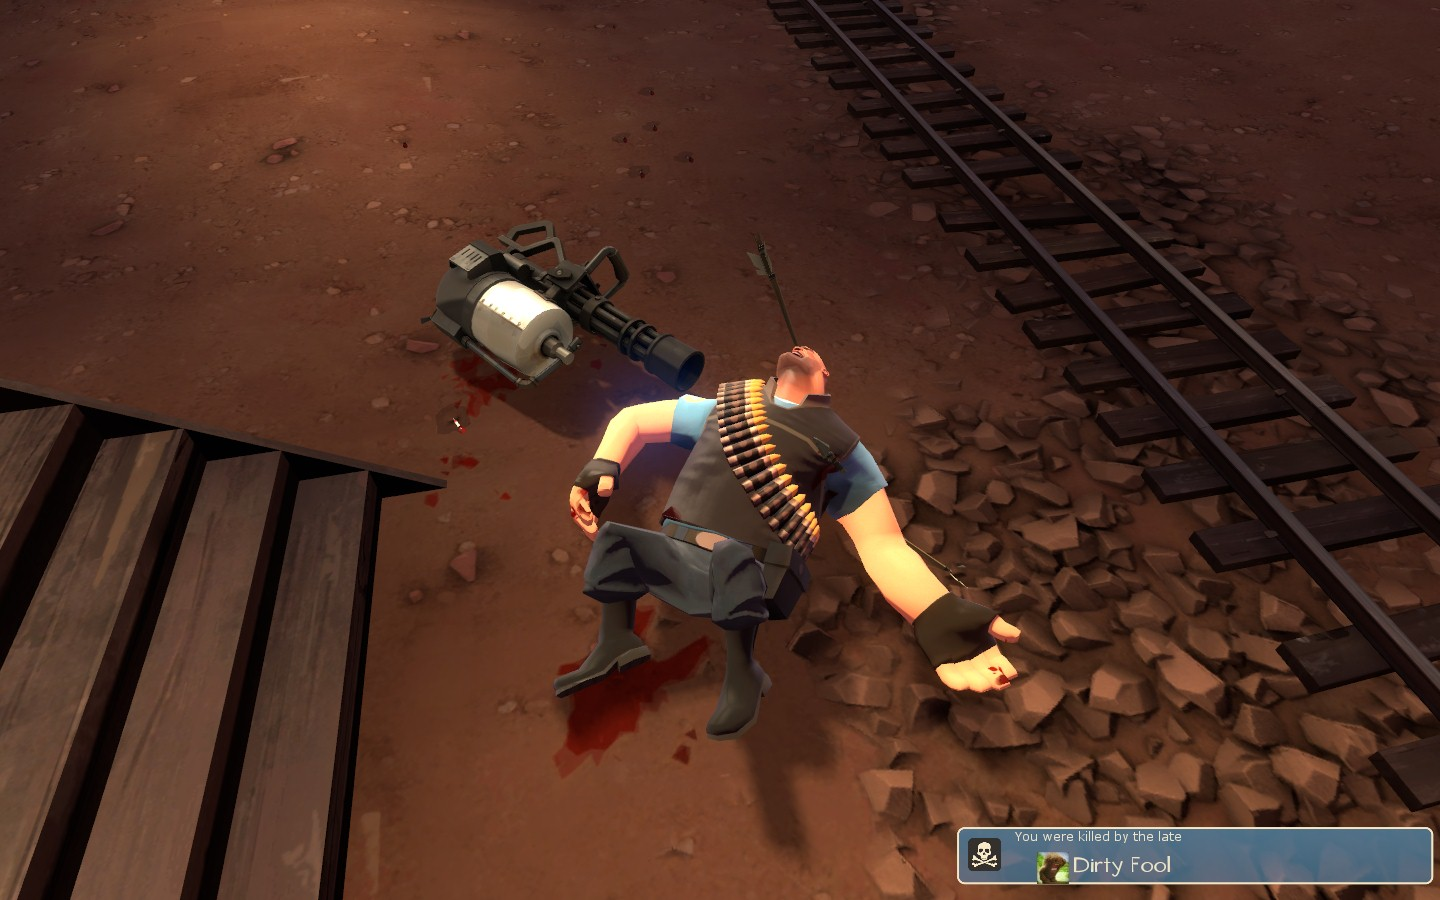 Team_Fortress2_Epic_Heavy_Death.jpg